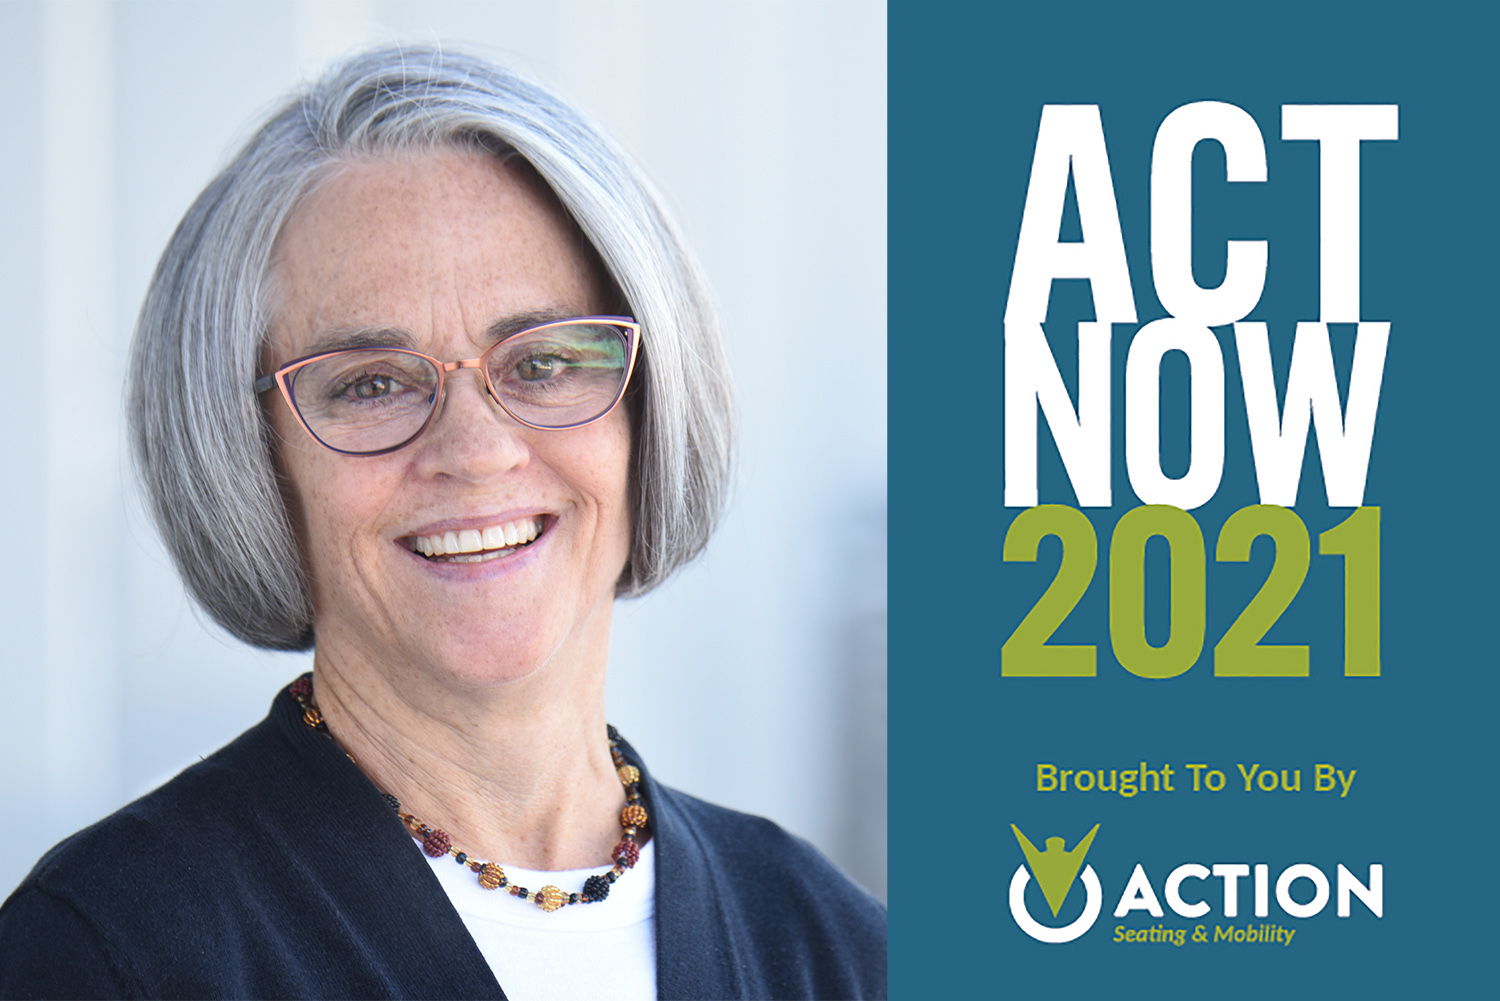 Kelly Waugh will be presenting at the ACT Bow 2021 Conference brought to you by Action Seating and Mobility